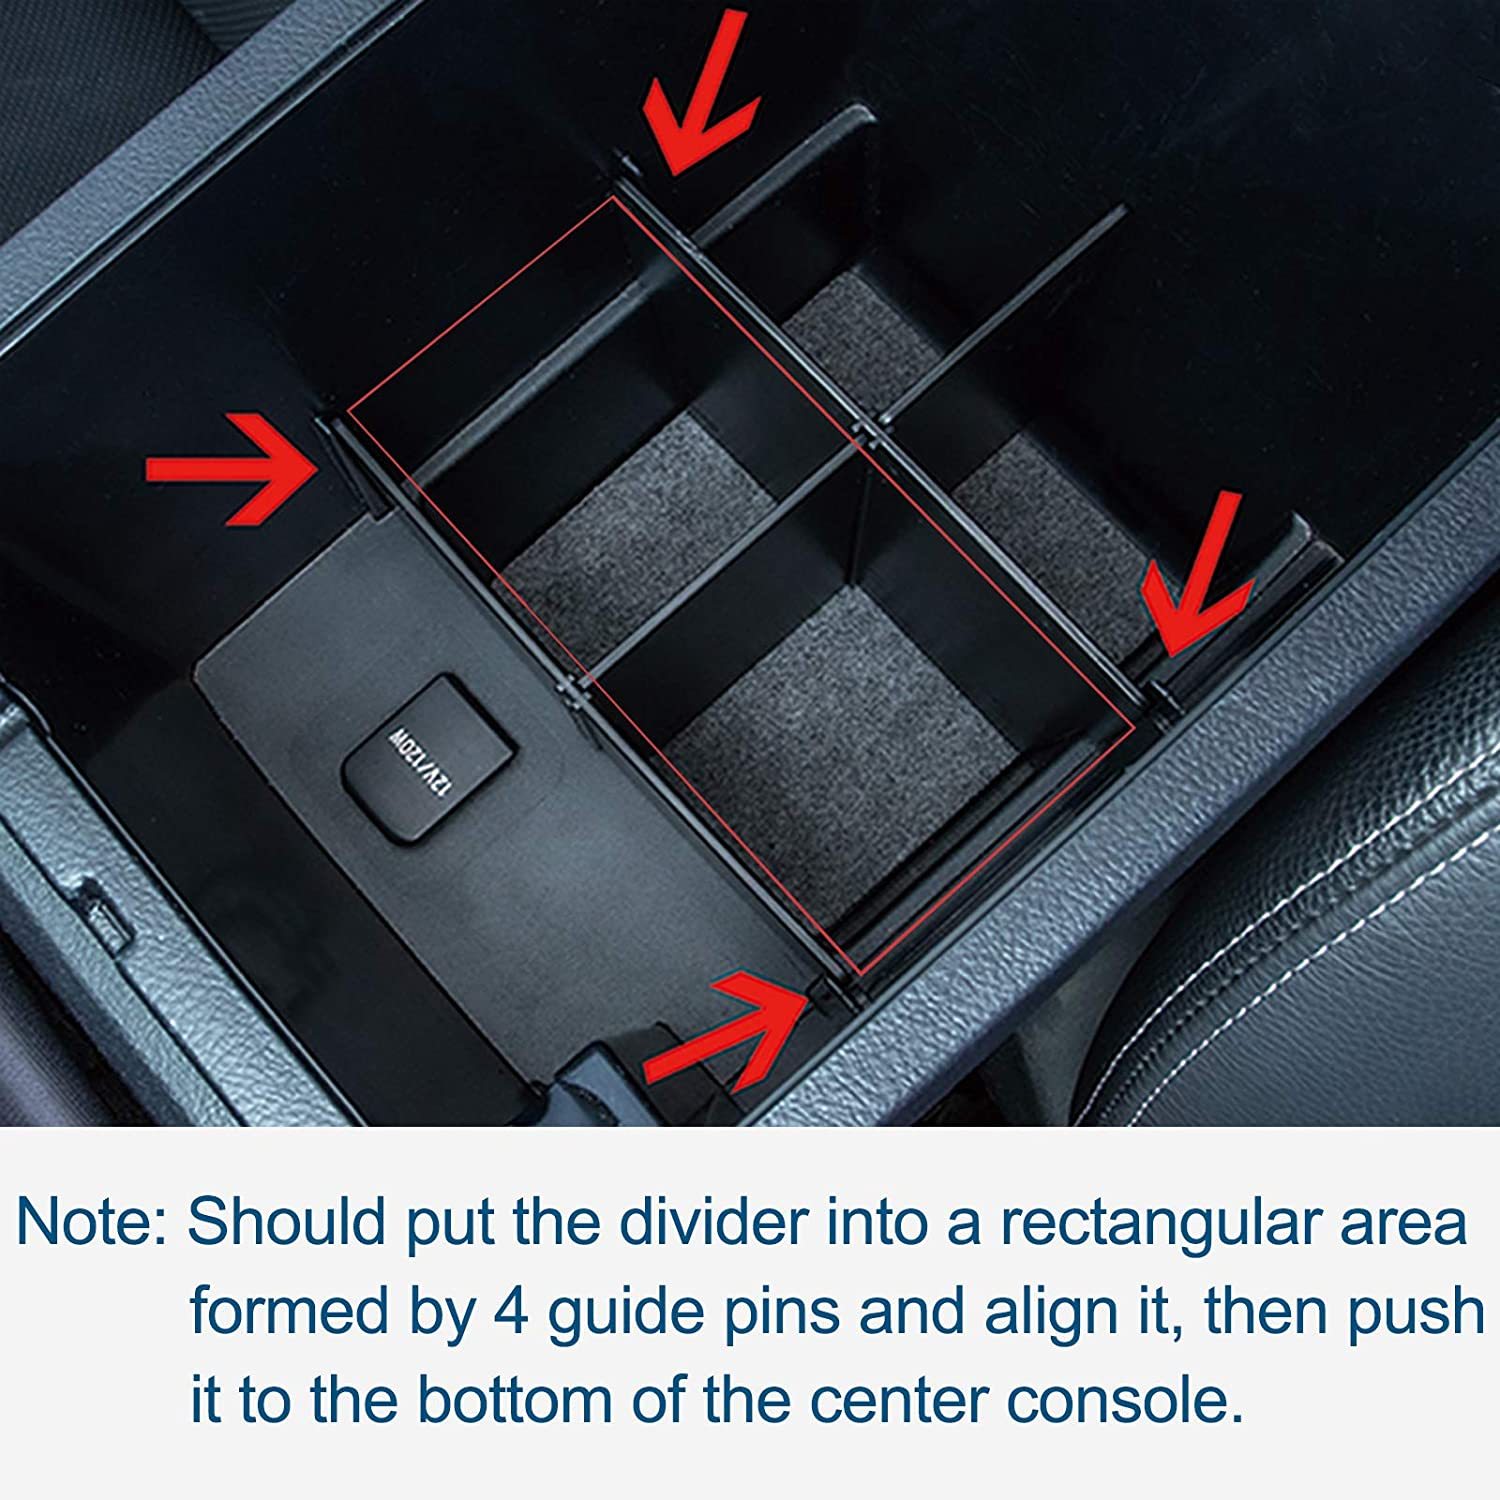 JDMCAR Center Console Organizer Compatible with Toyota 4Runner Accessories 2010-2020 2021 Insert ABS Black Materials Compartment Divider